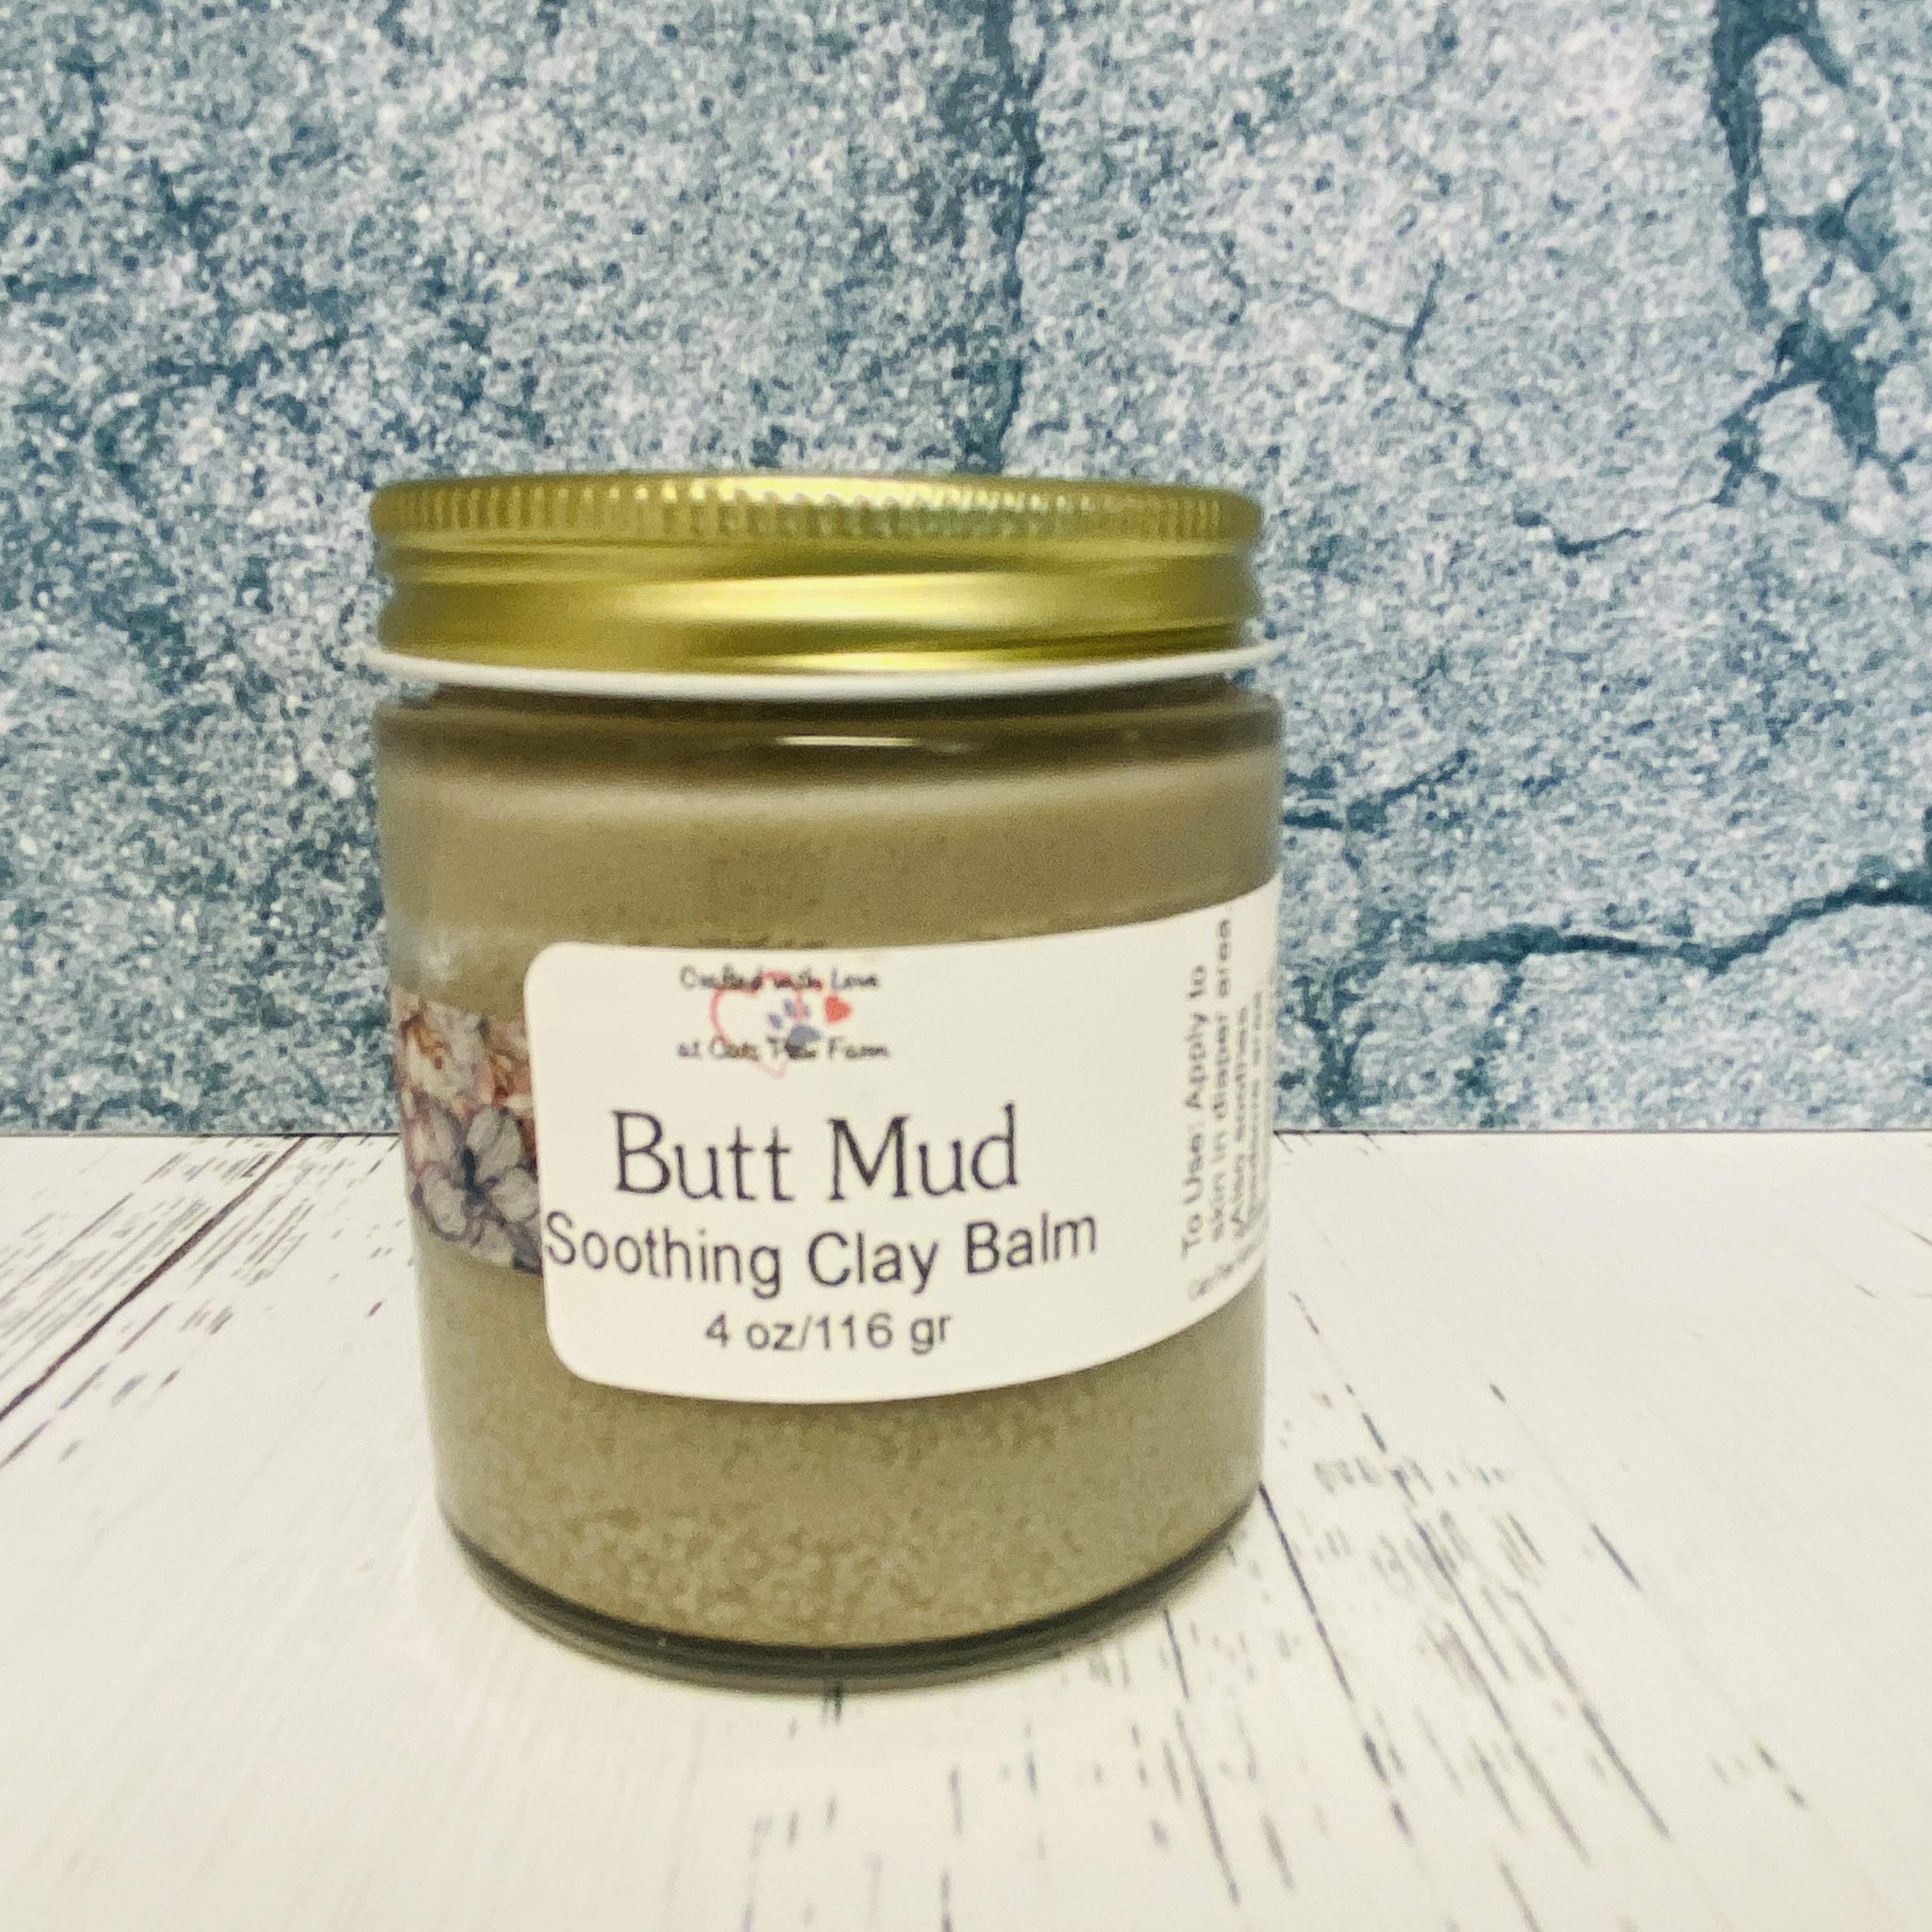 Butt Mud Soothing Clay Balm